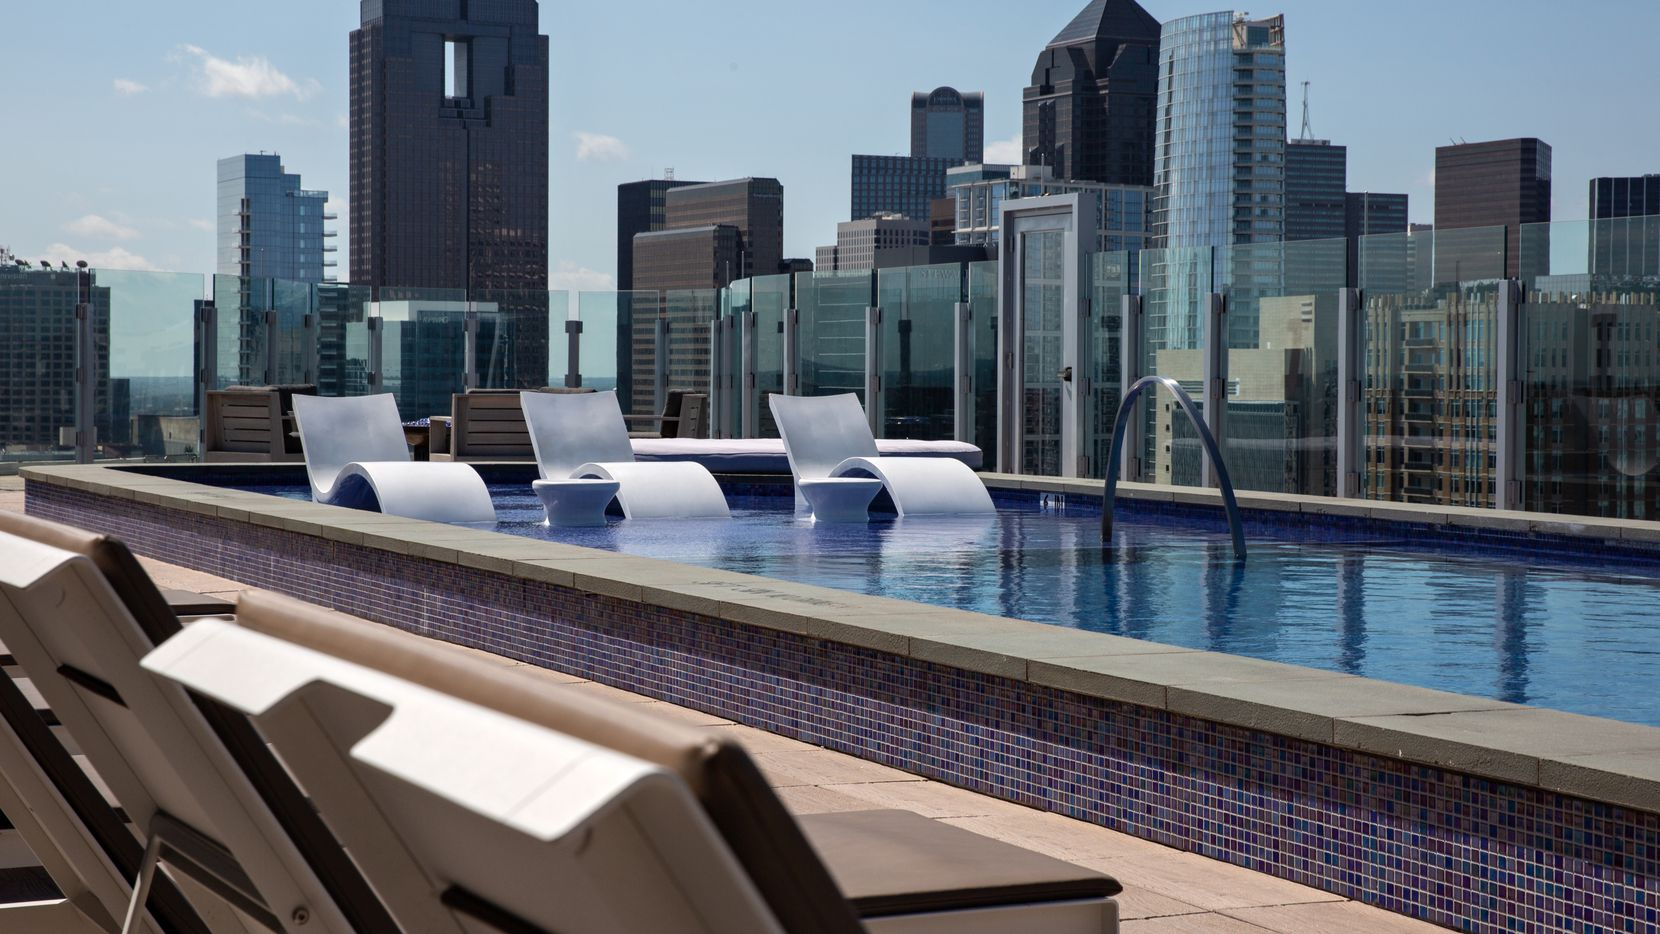 The pool deck of the 20-story One Uptown residential tower on McKinney Avenue in Dallas, which is converting to condominiums.